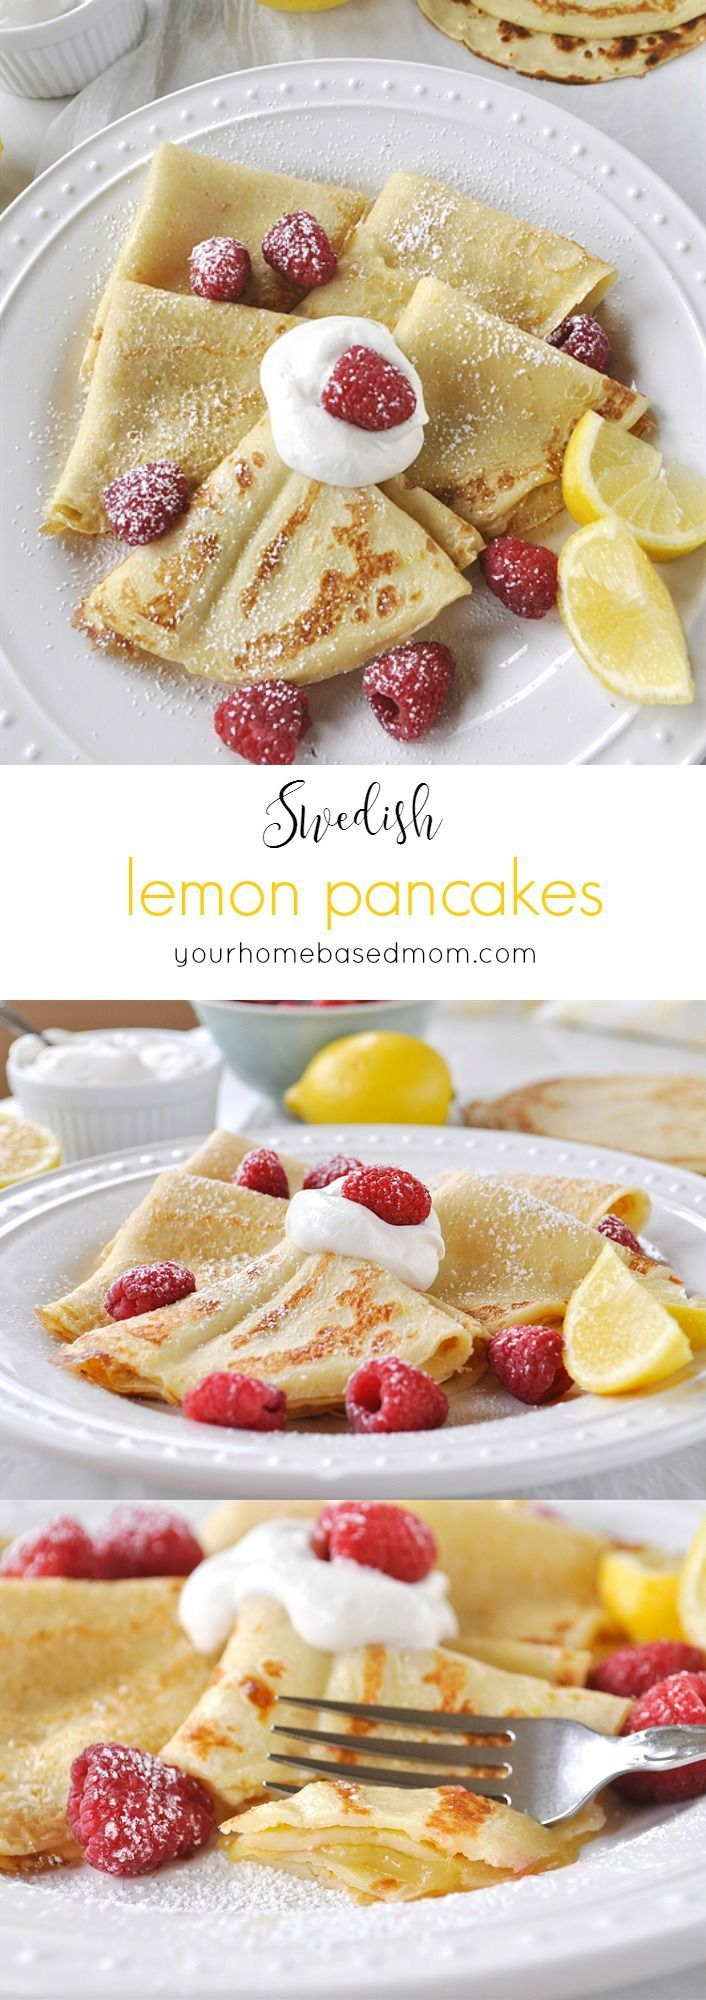 Swedish Lemon Pancakes recipes. Surprise your family with this fabulously spring breakfast recipe!